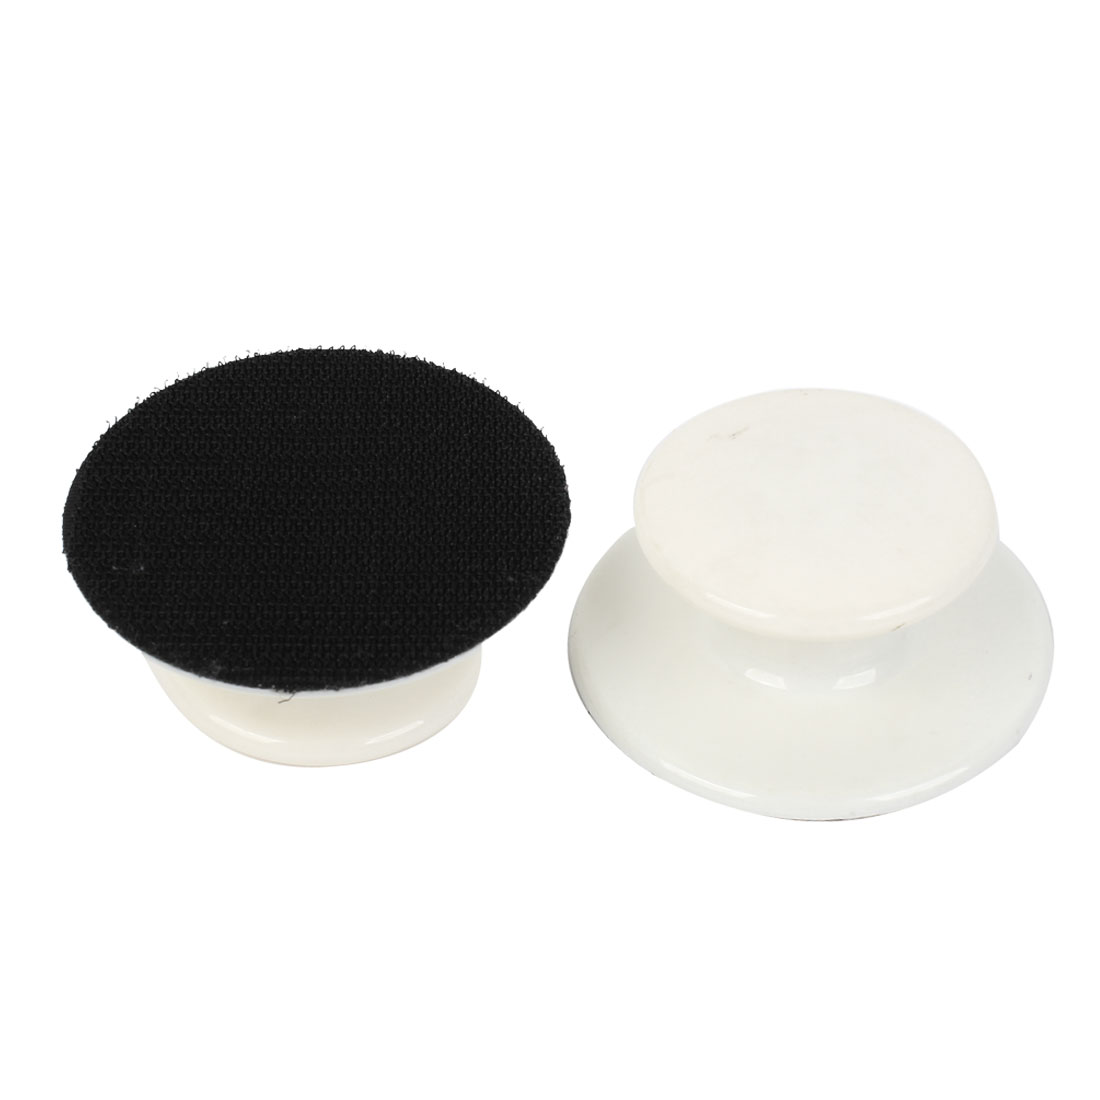 2 Pcs Car 68mm Dia Black White Cleaning Tools Threaded Polishing Wheel